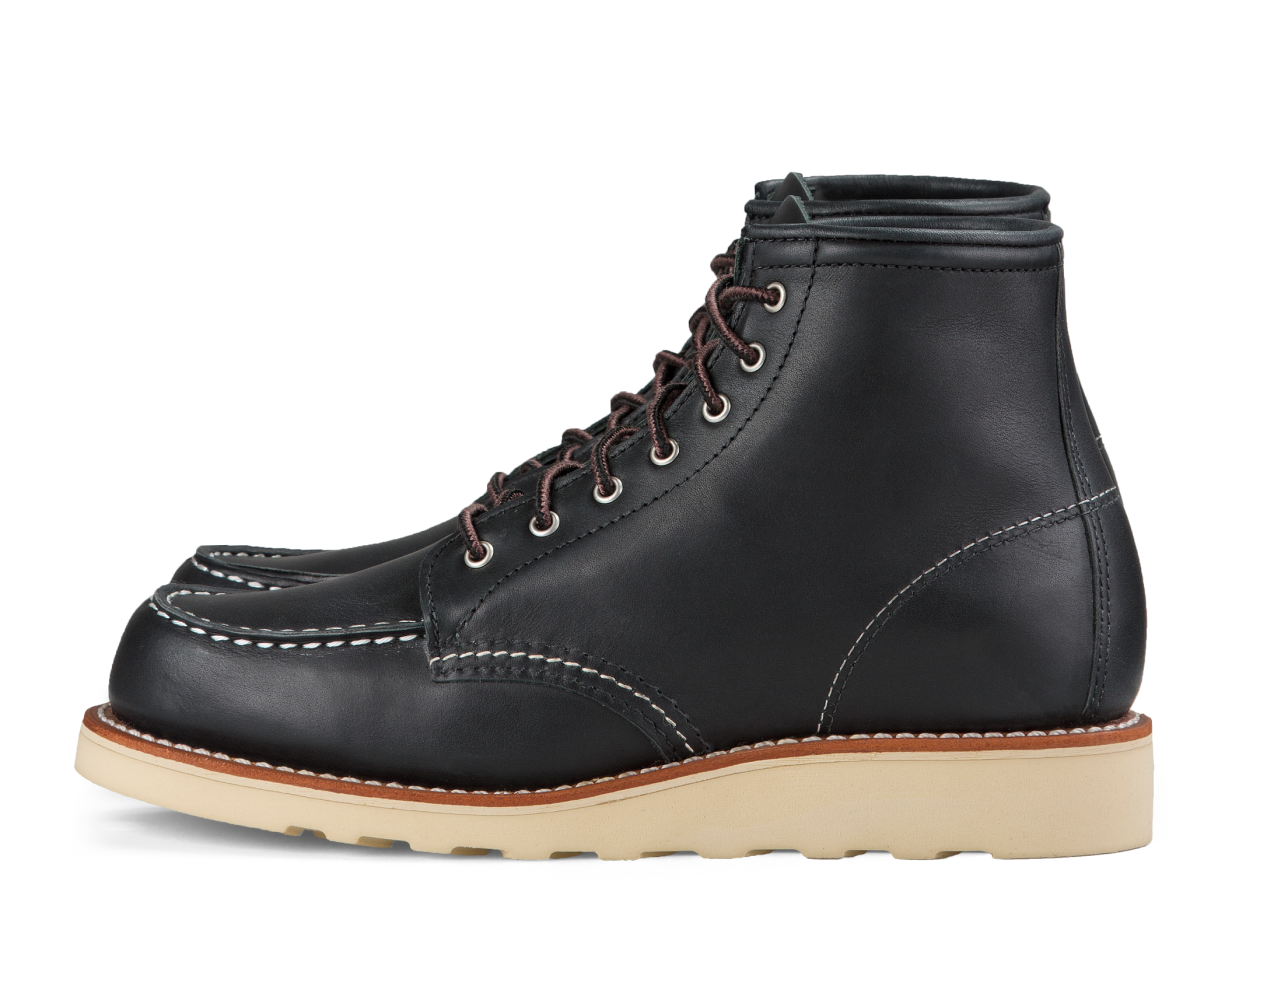 Red Wing 3373 Moc Toe